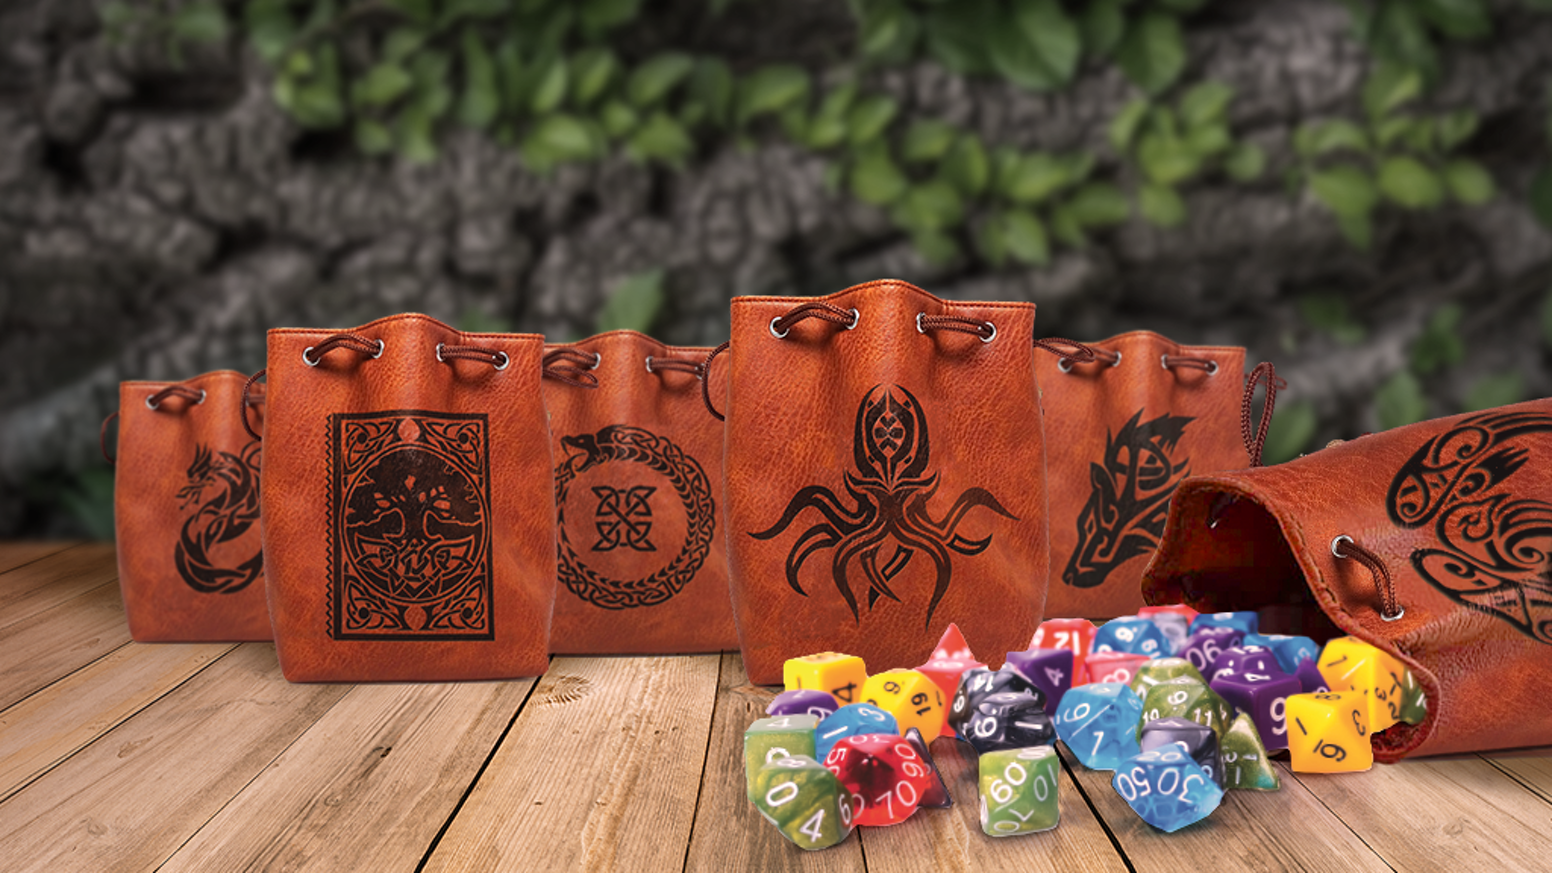 A new series of dice bags featuring Easy Roller Dice Co. original art. Each bag closes easily and is designed to hold hundreds of dice!